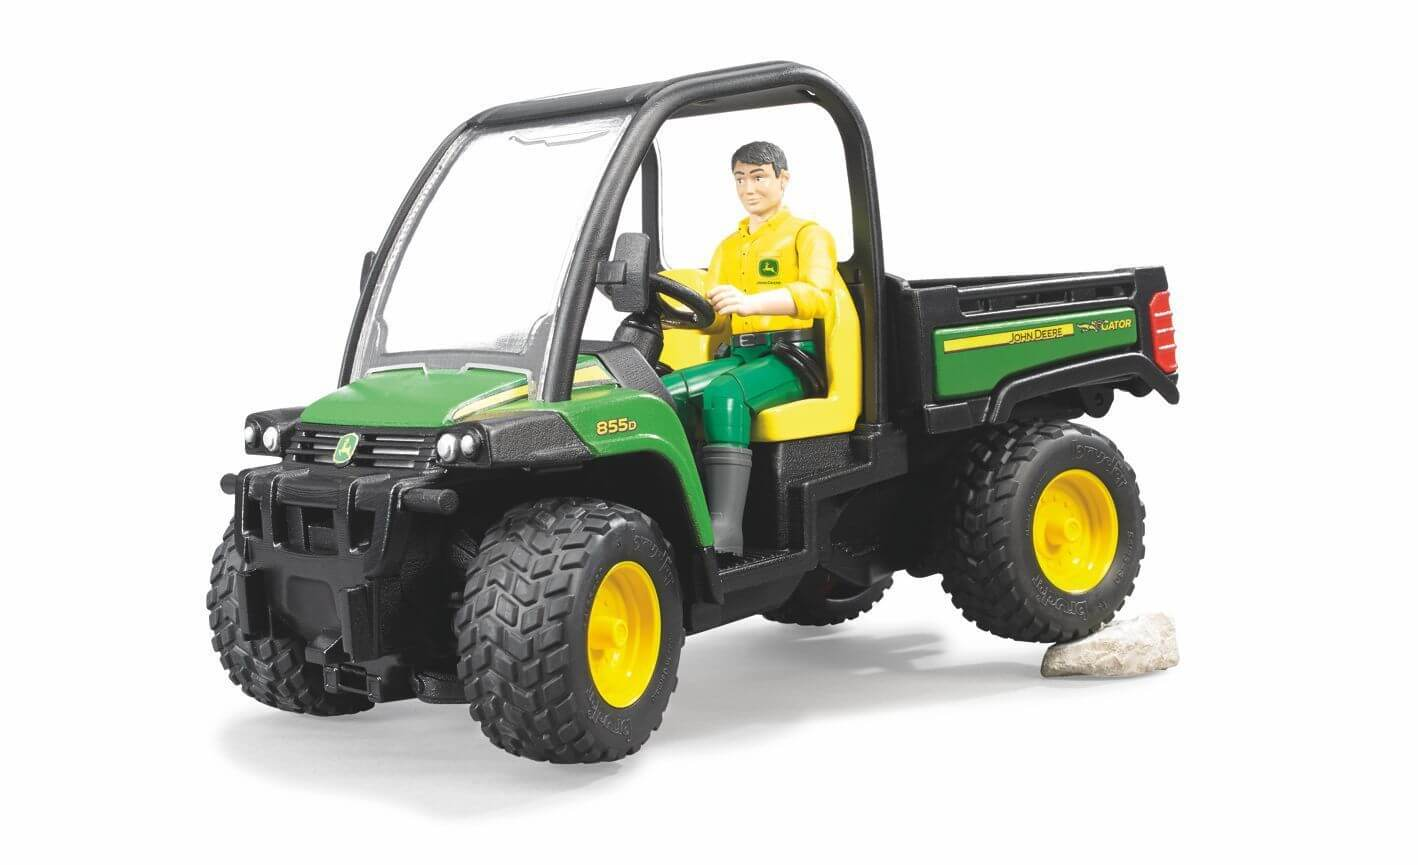 bruder john deere gator xuv 855d with driver jadrem toys. Black Bedroom Furniture Sets. Home Design Ideas